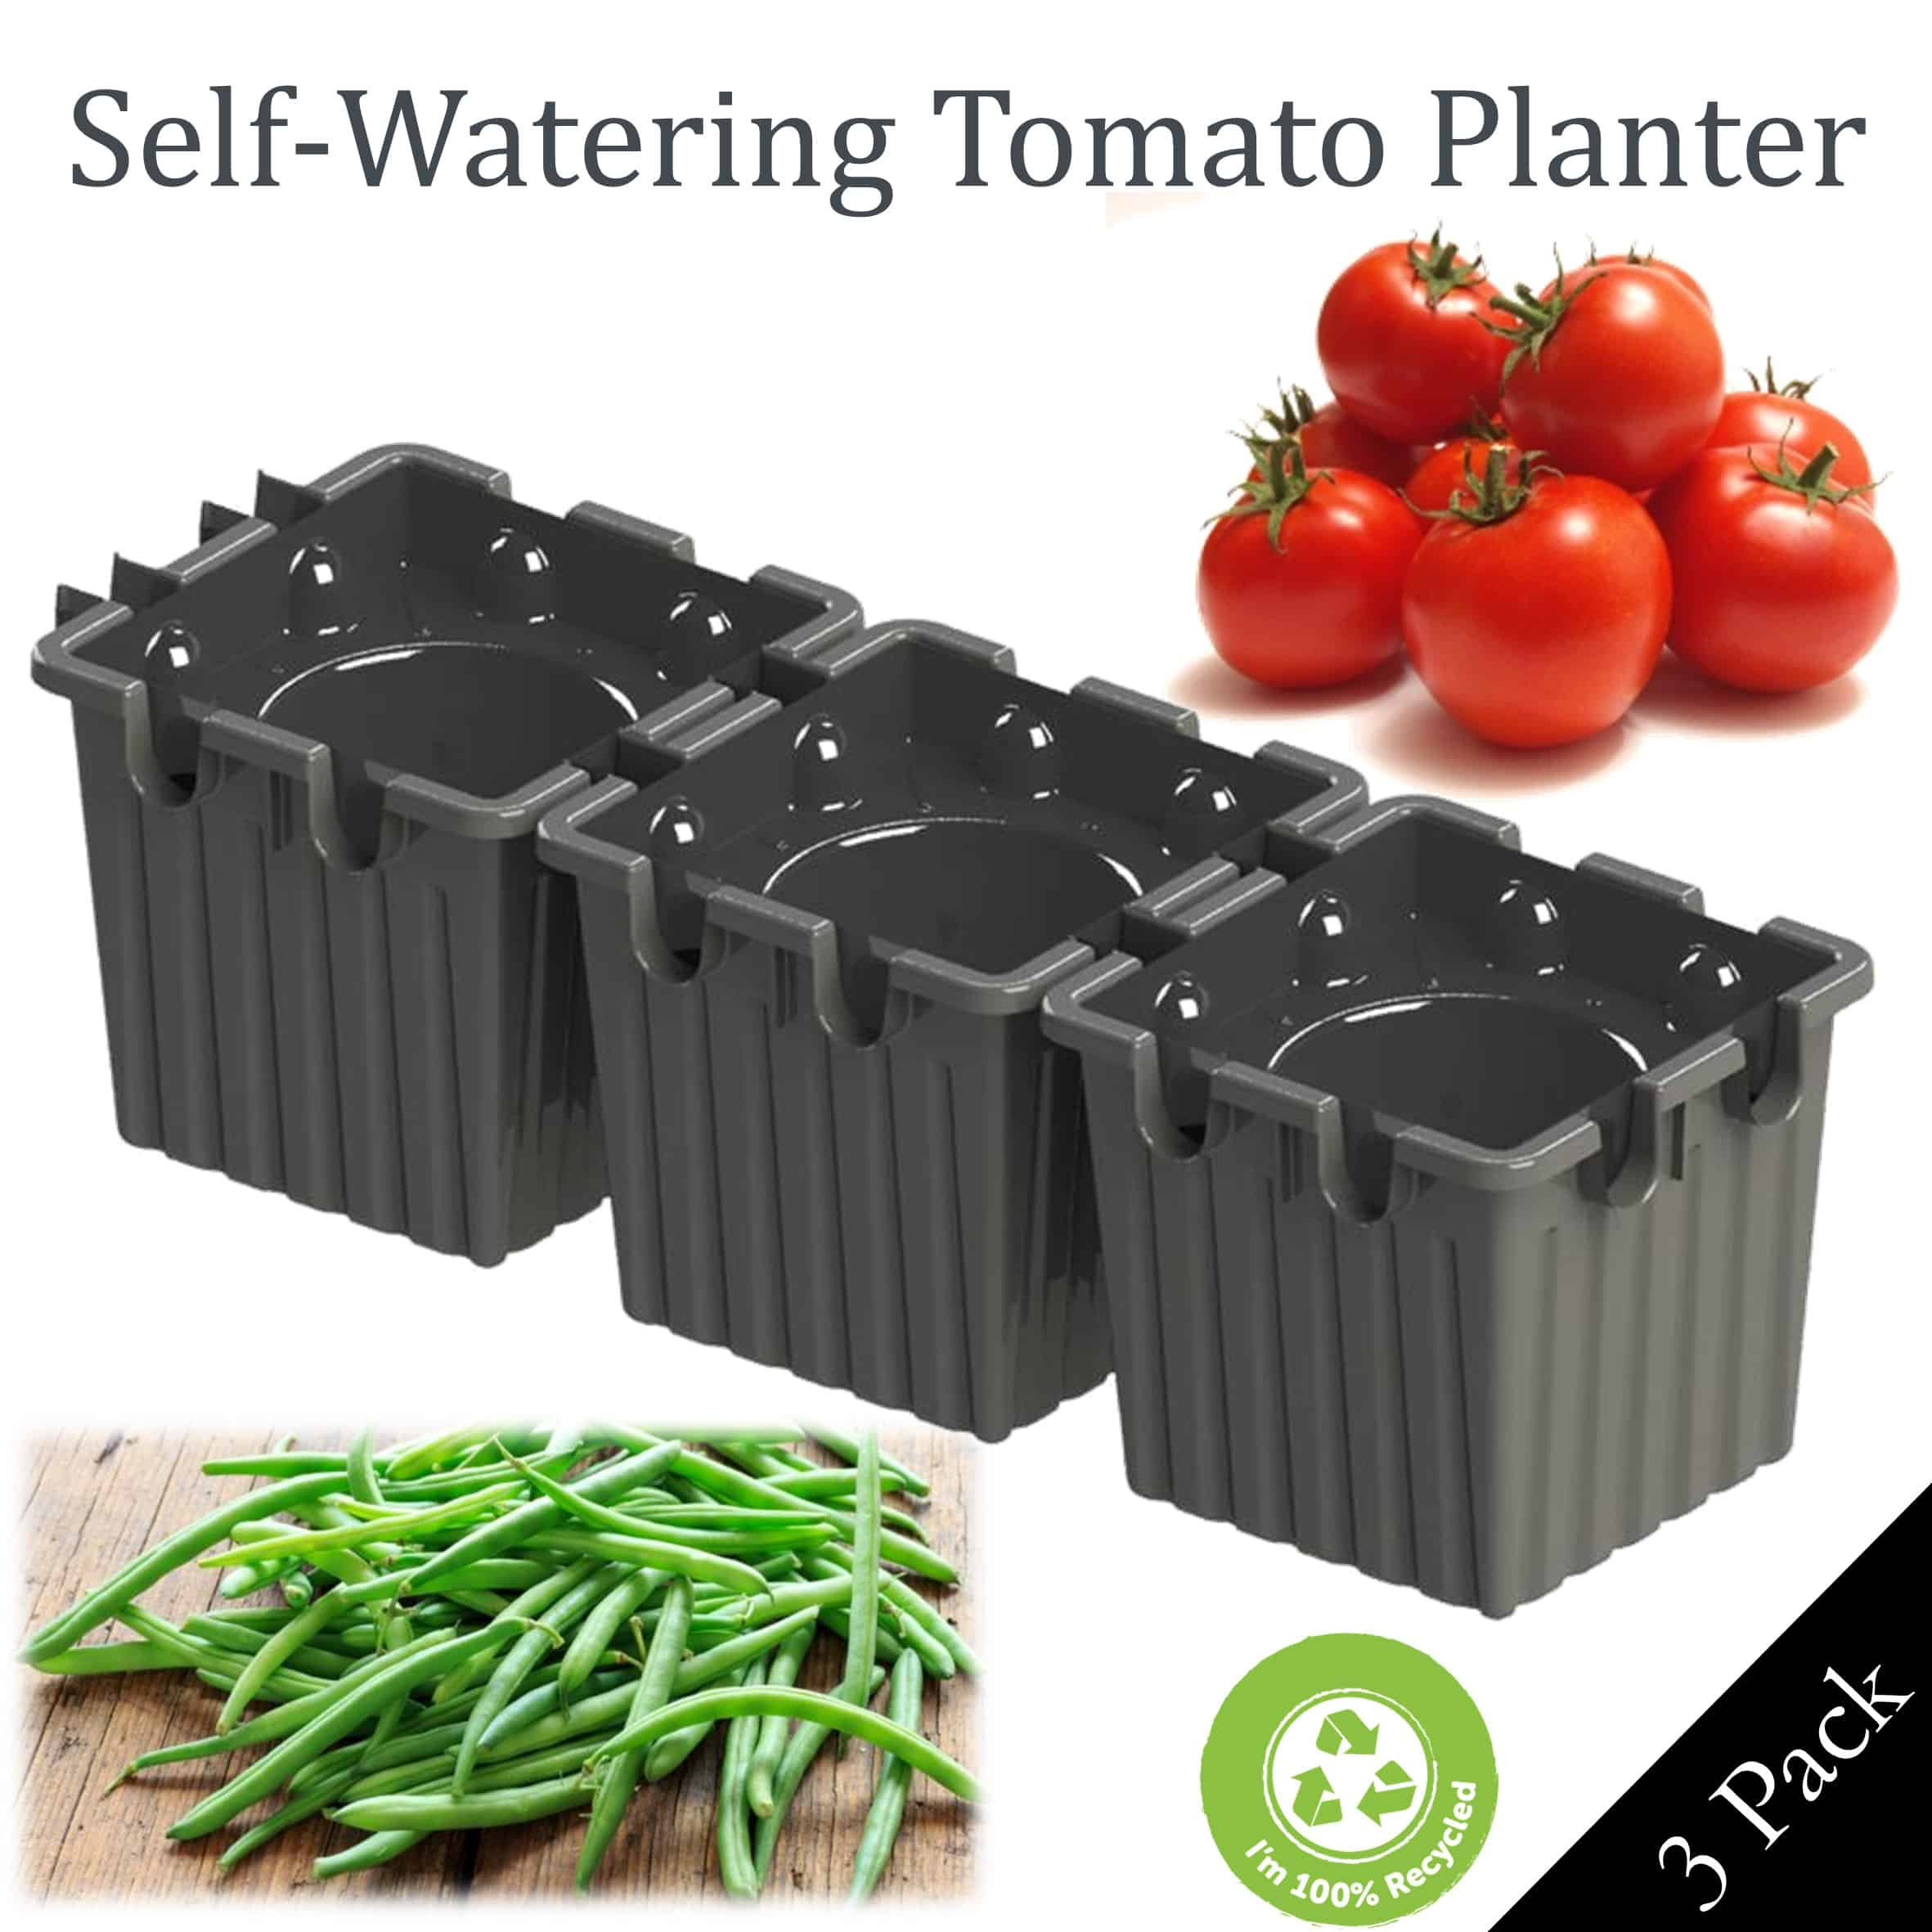 grey self-watering tomato planter